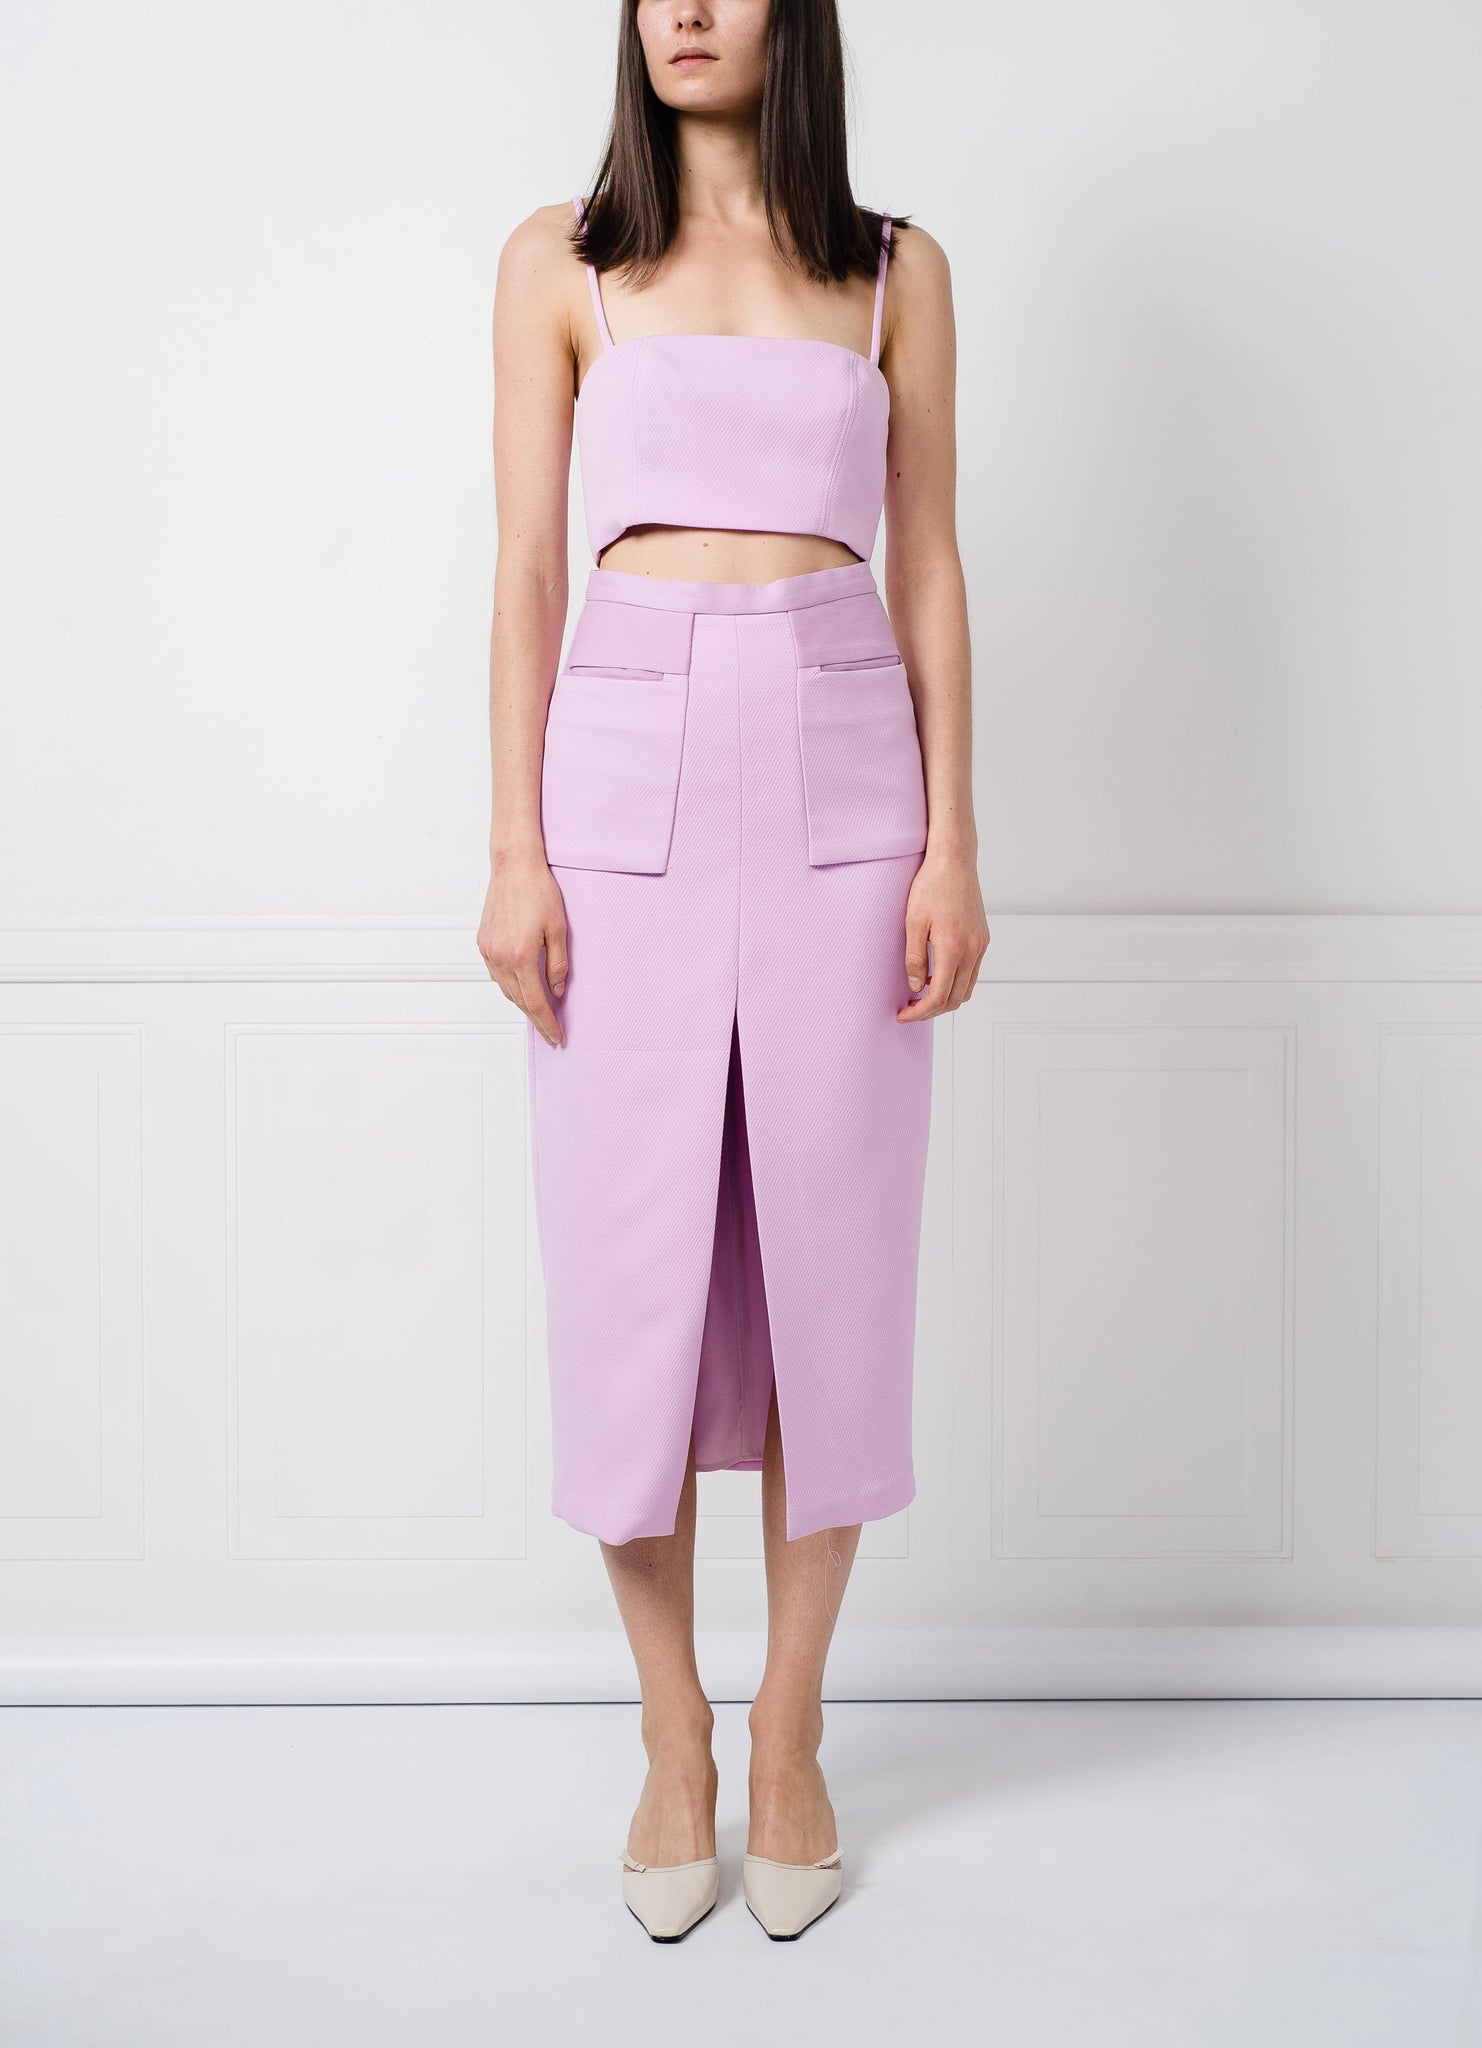 SALE | Meg Top in Lilac